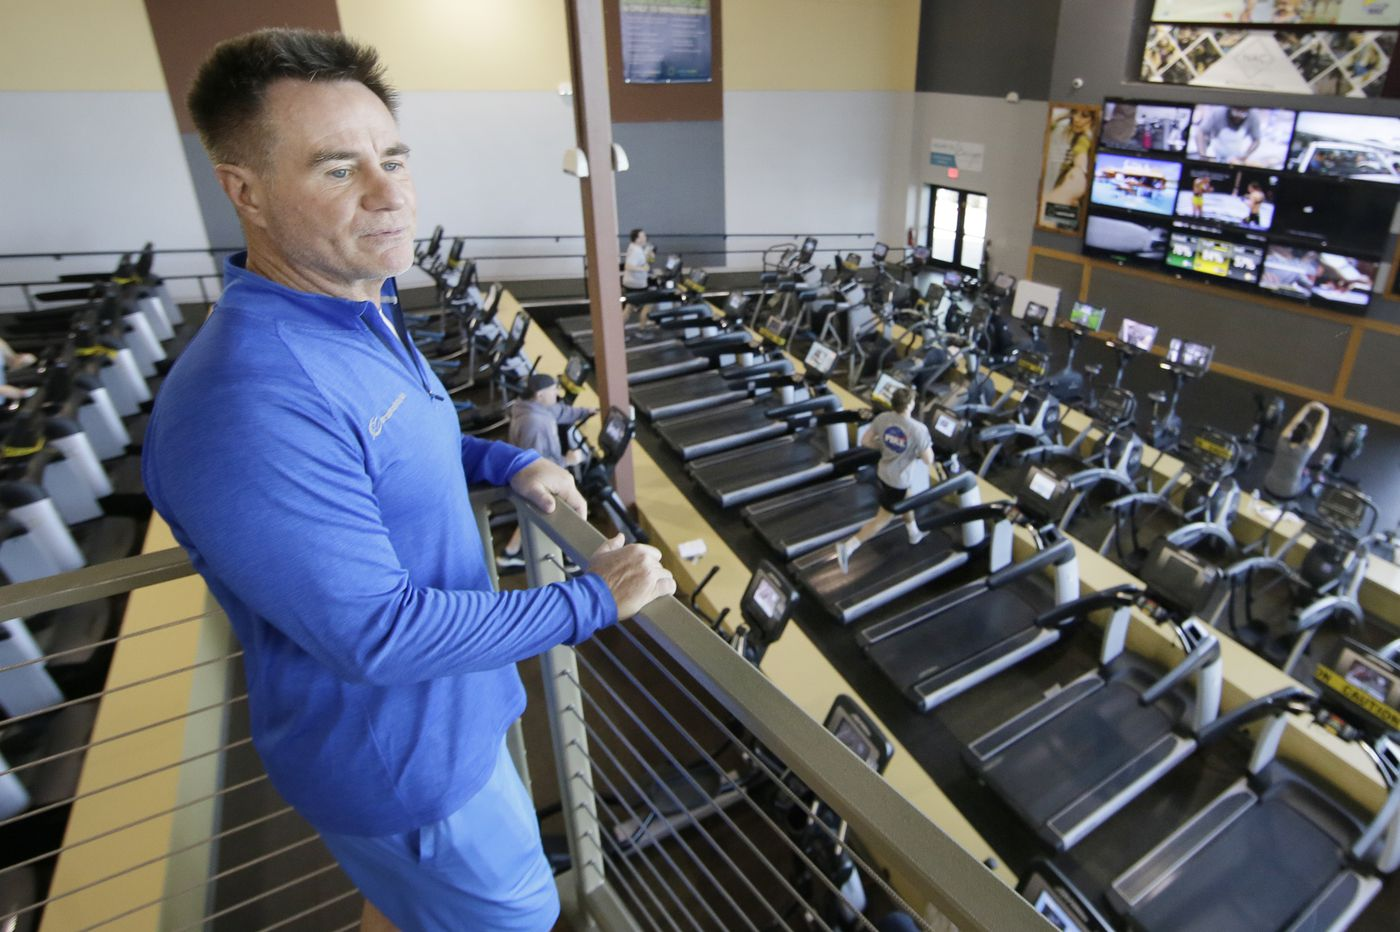 With coronavirus closing schools, a Bucks County health club owner planned to open a day camp for kids. That's scrapped and he's closing his gym.